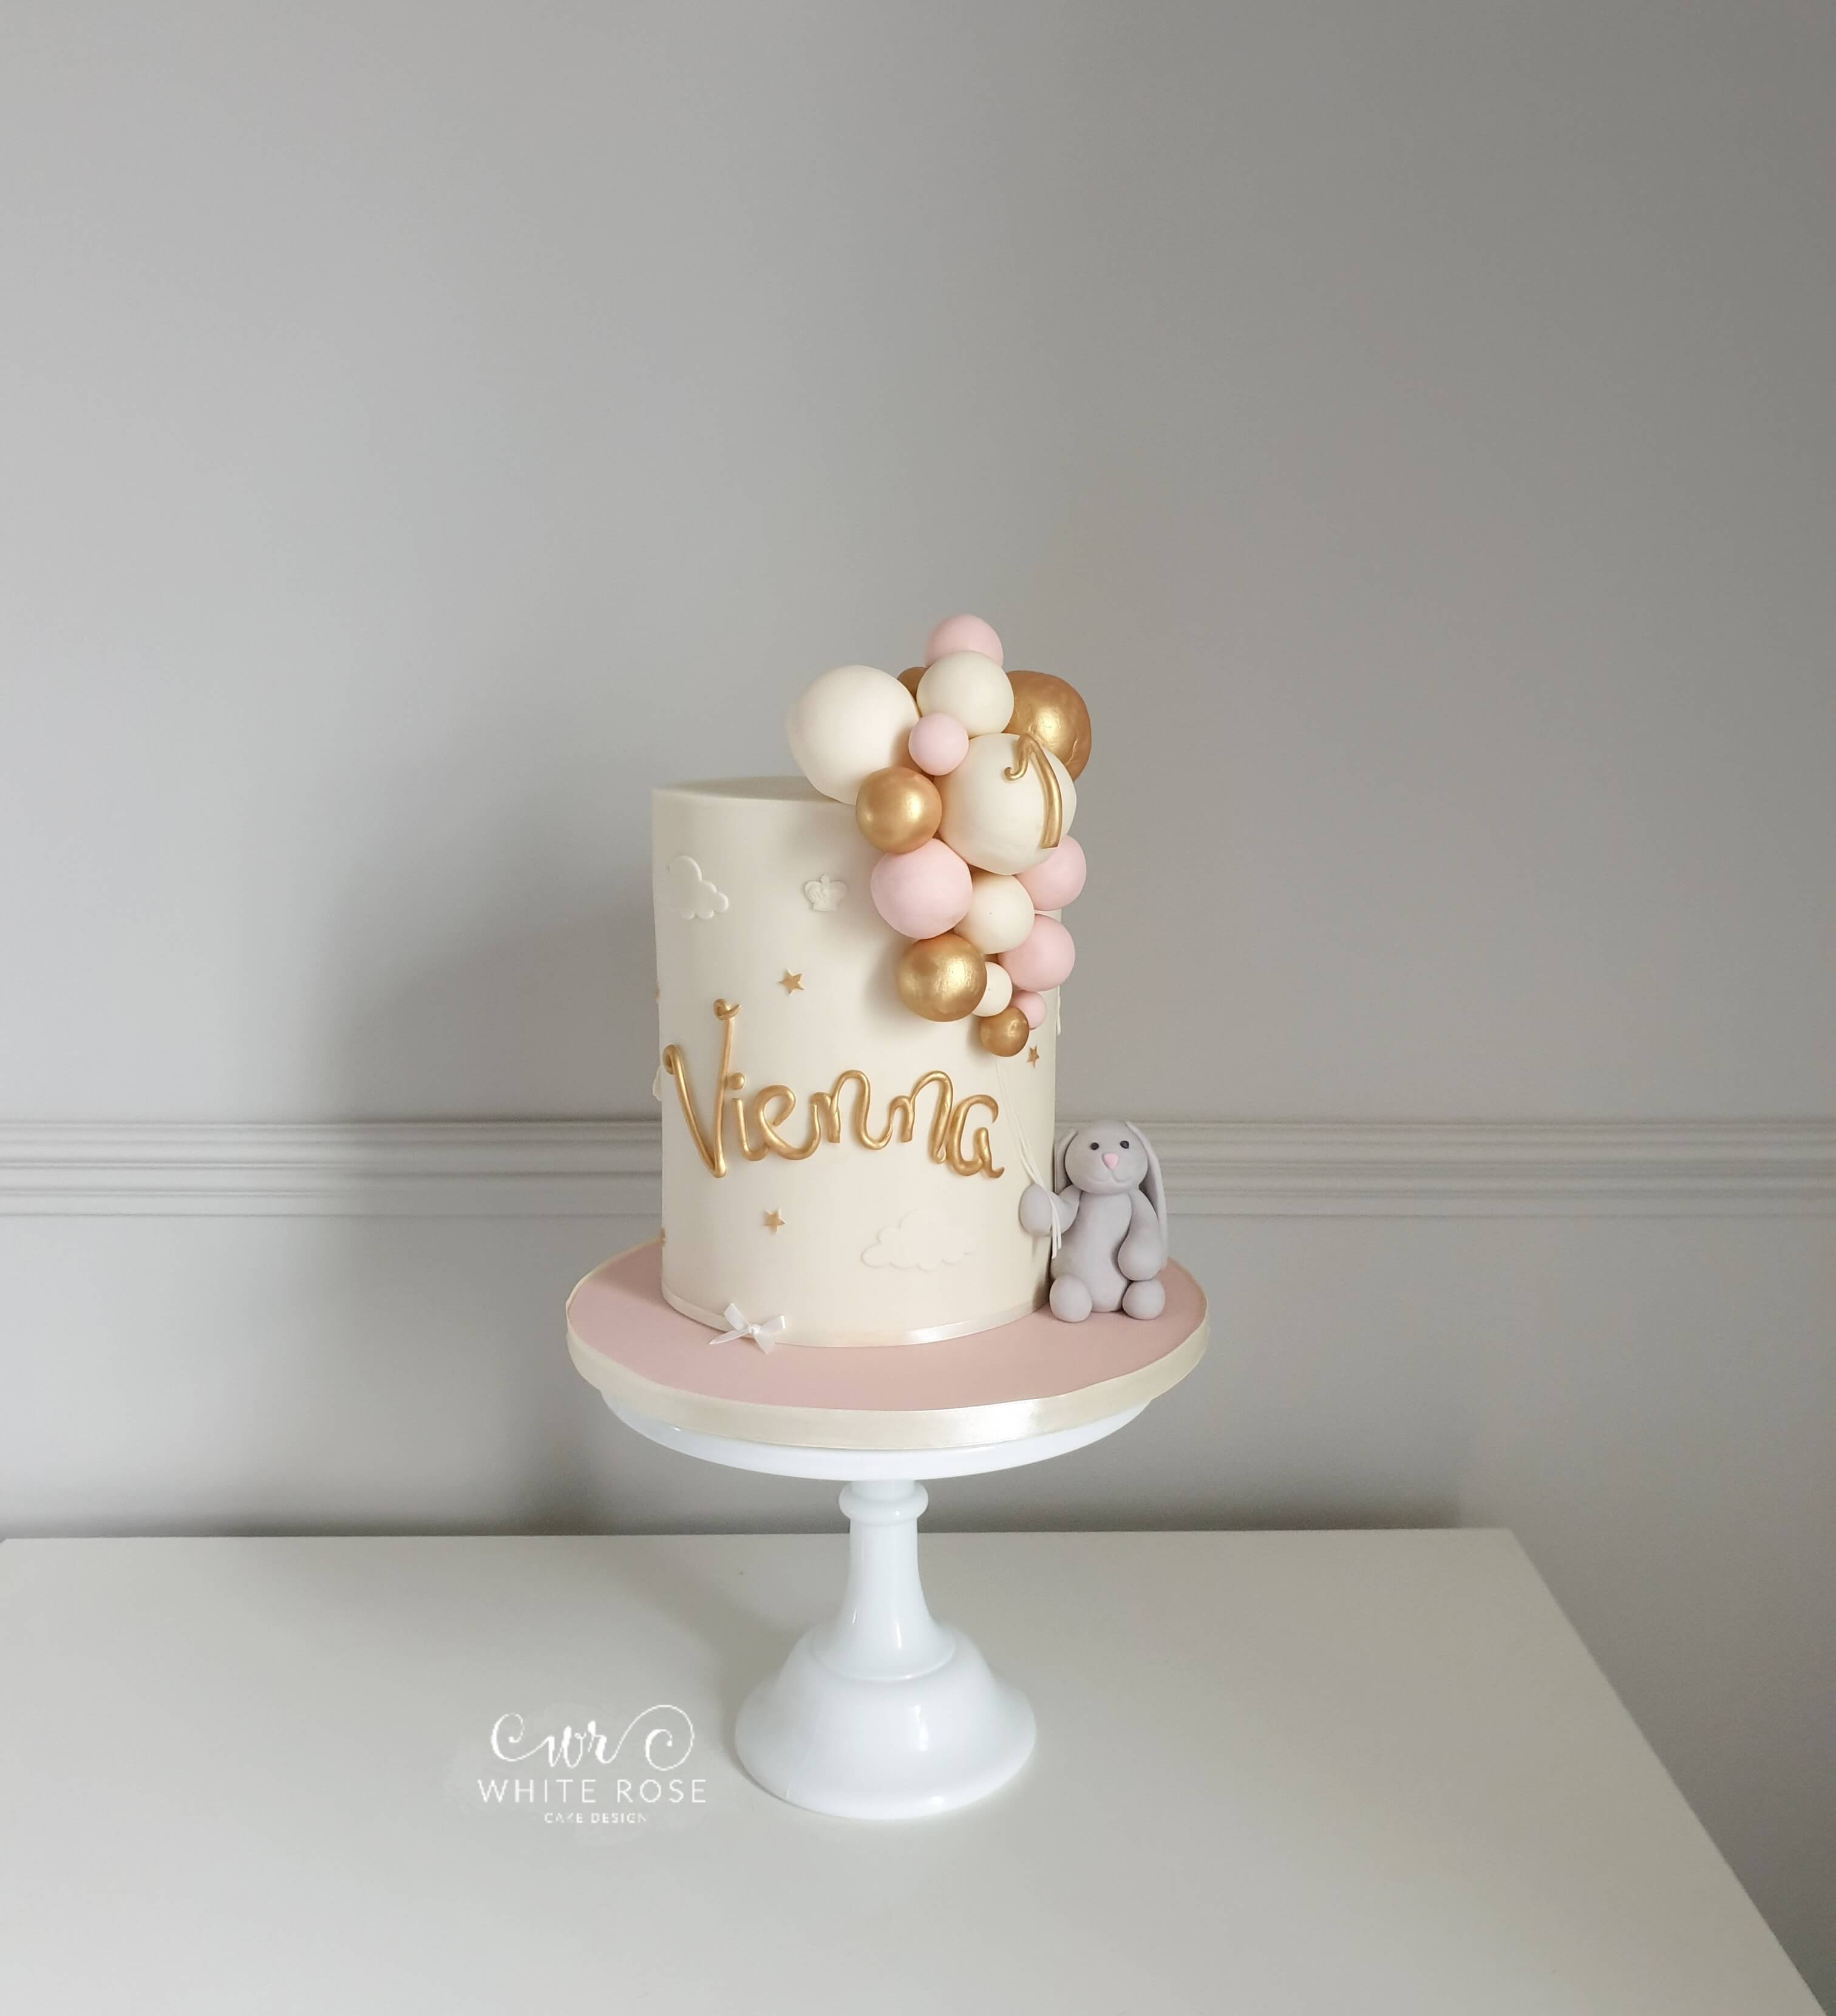 PInk and Gold Jellycat Bunny 1st Birthday Cake by White Rose Cake Design Cake Maker in Holmfirth